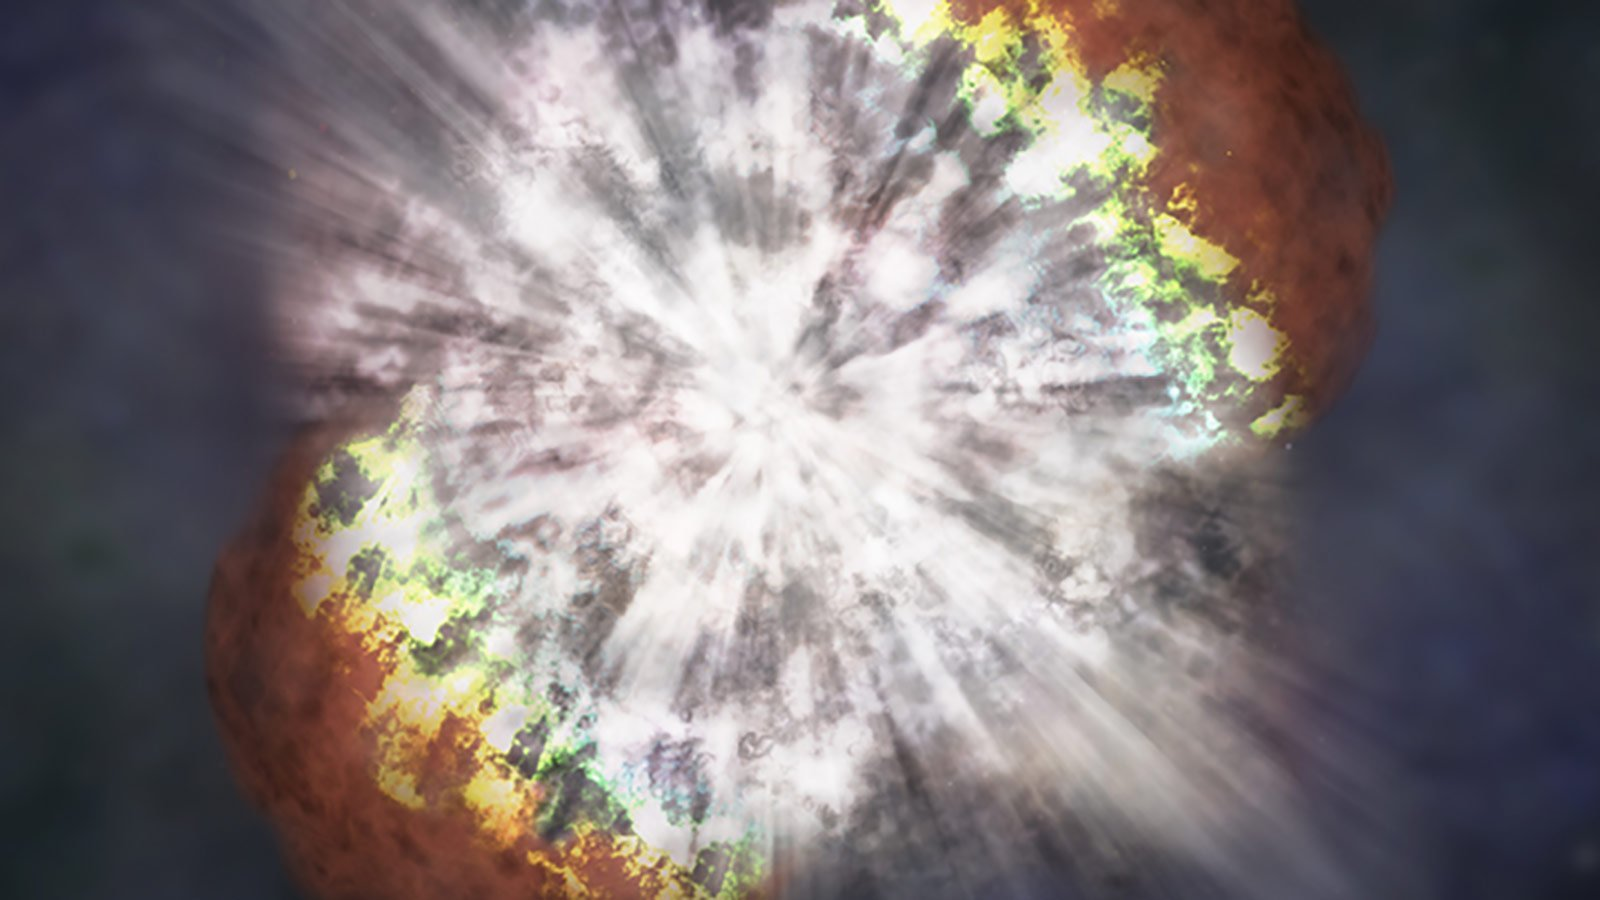 Researchers found supernova dust in snow from Antarctica and it could be 20 million years old